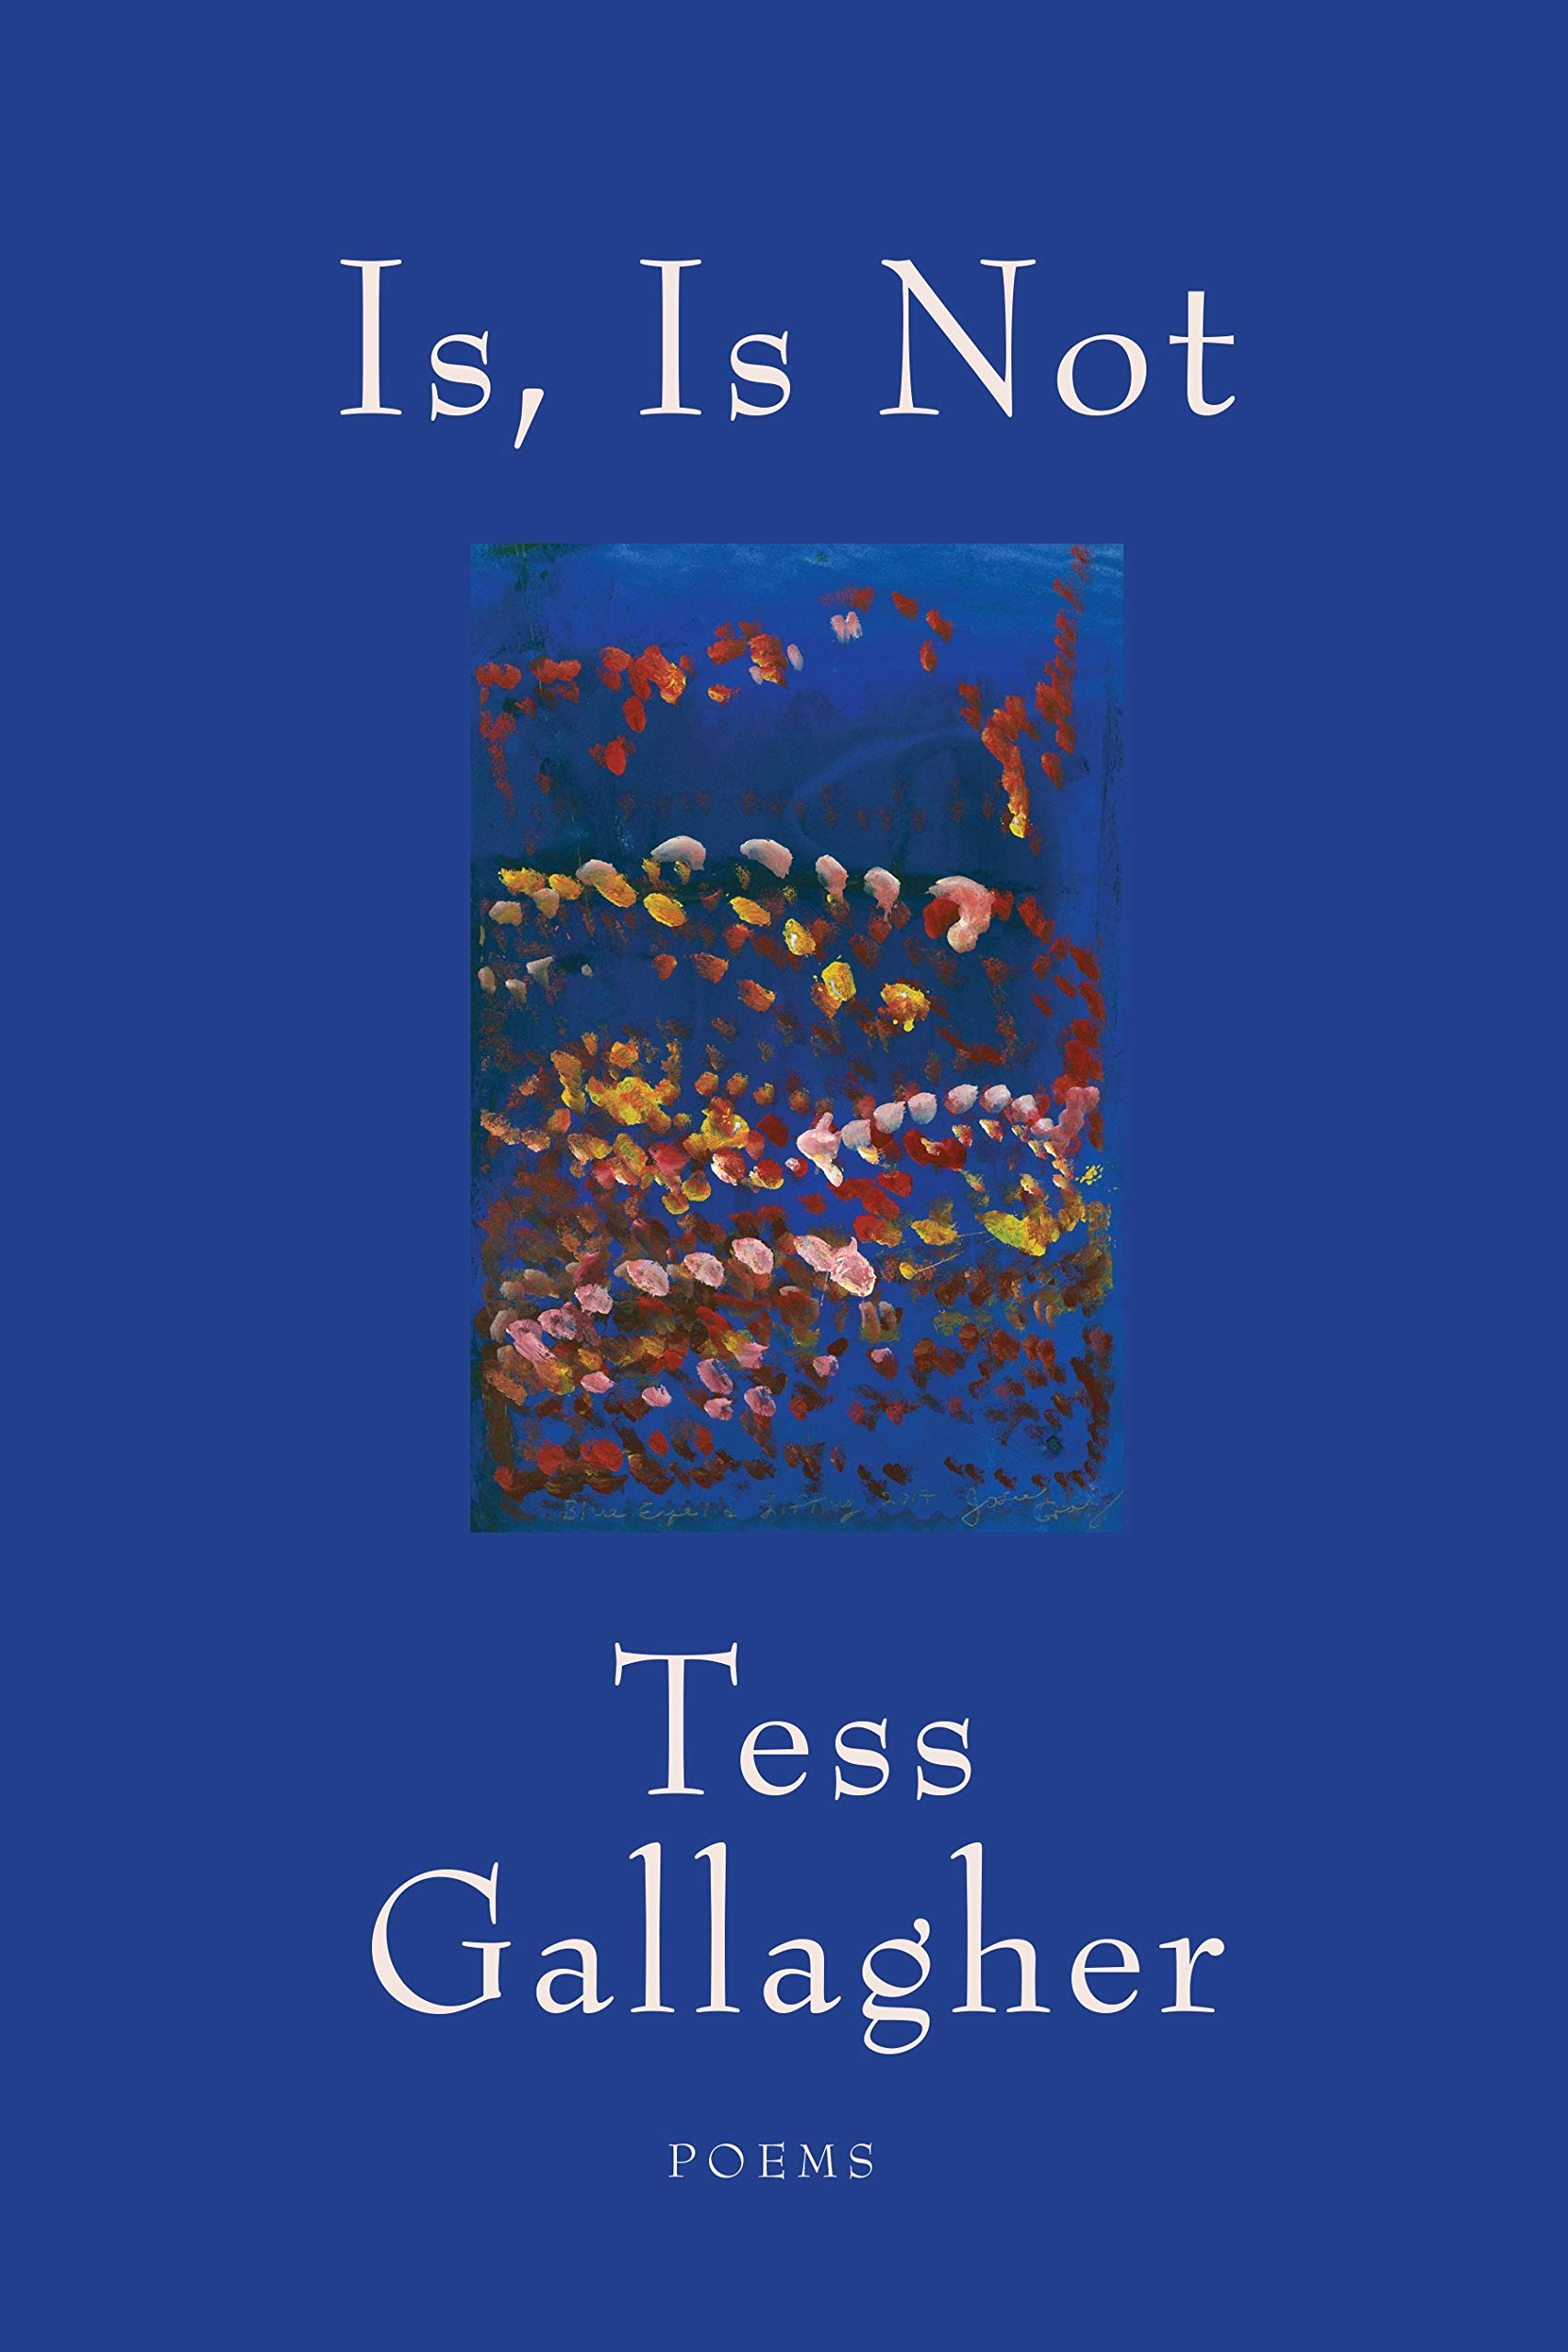 poems, Tess Gallagher